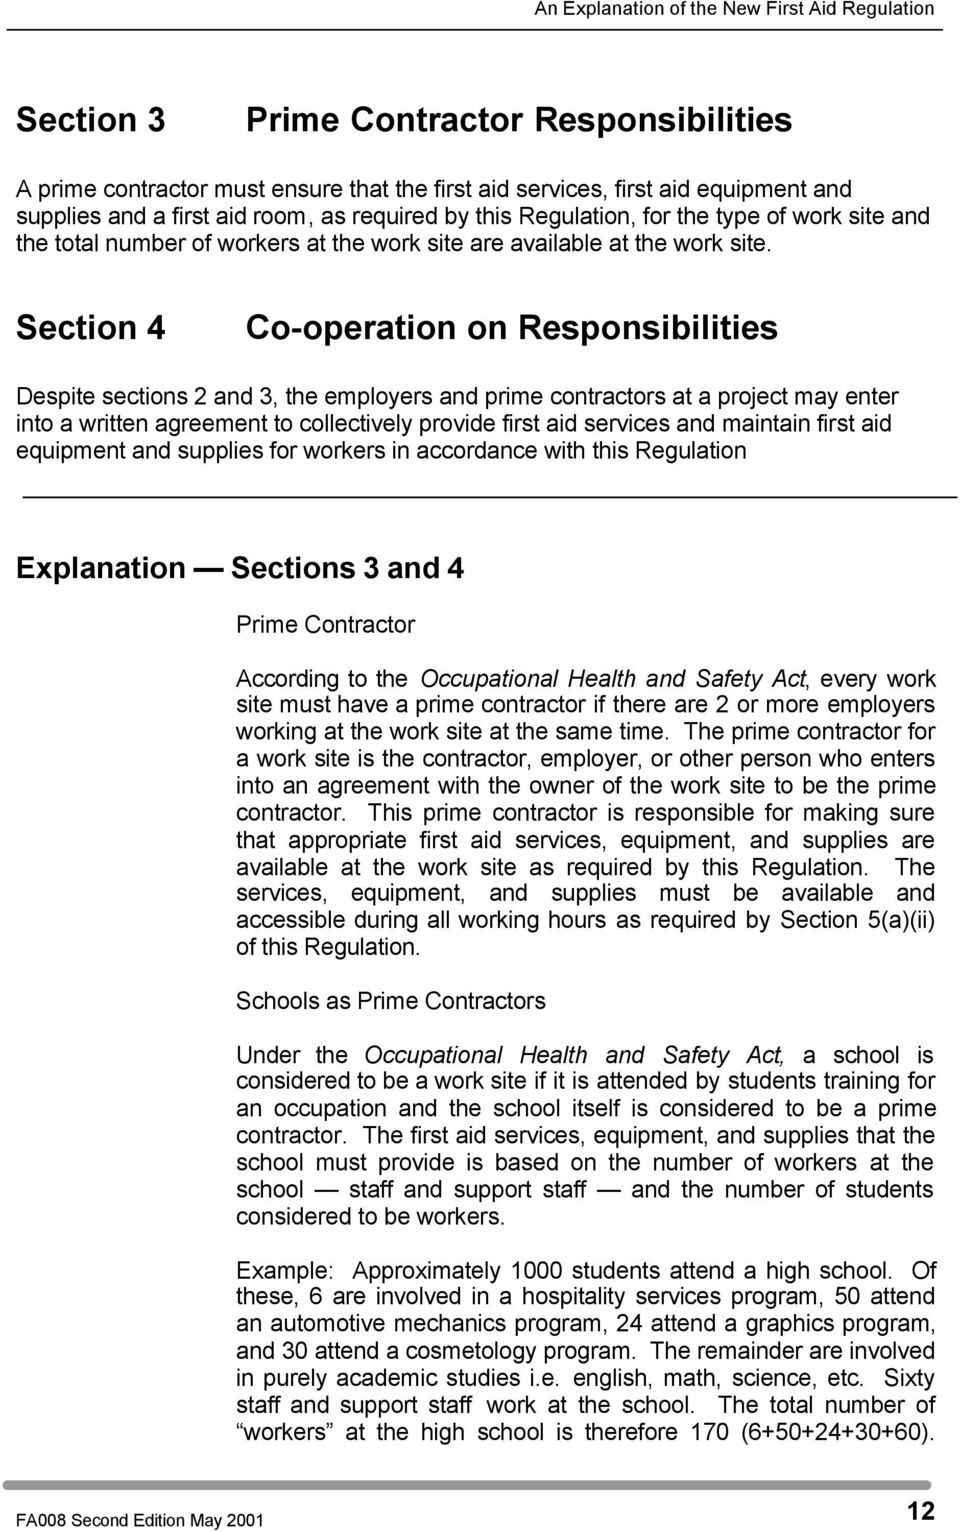 Section 4 Co-operation on Responsibilities Despite sections 2 and 3, the employers and prime contractors at a project may enter into a written agreement to collectively provide first aid services and